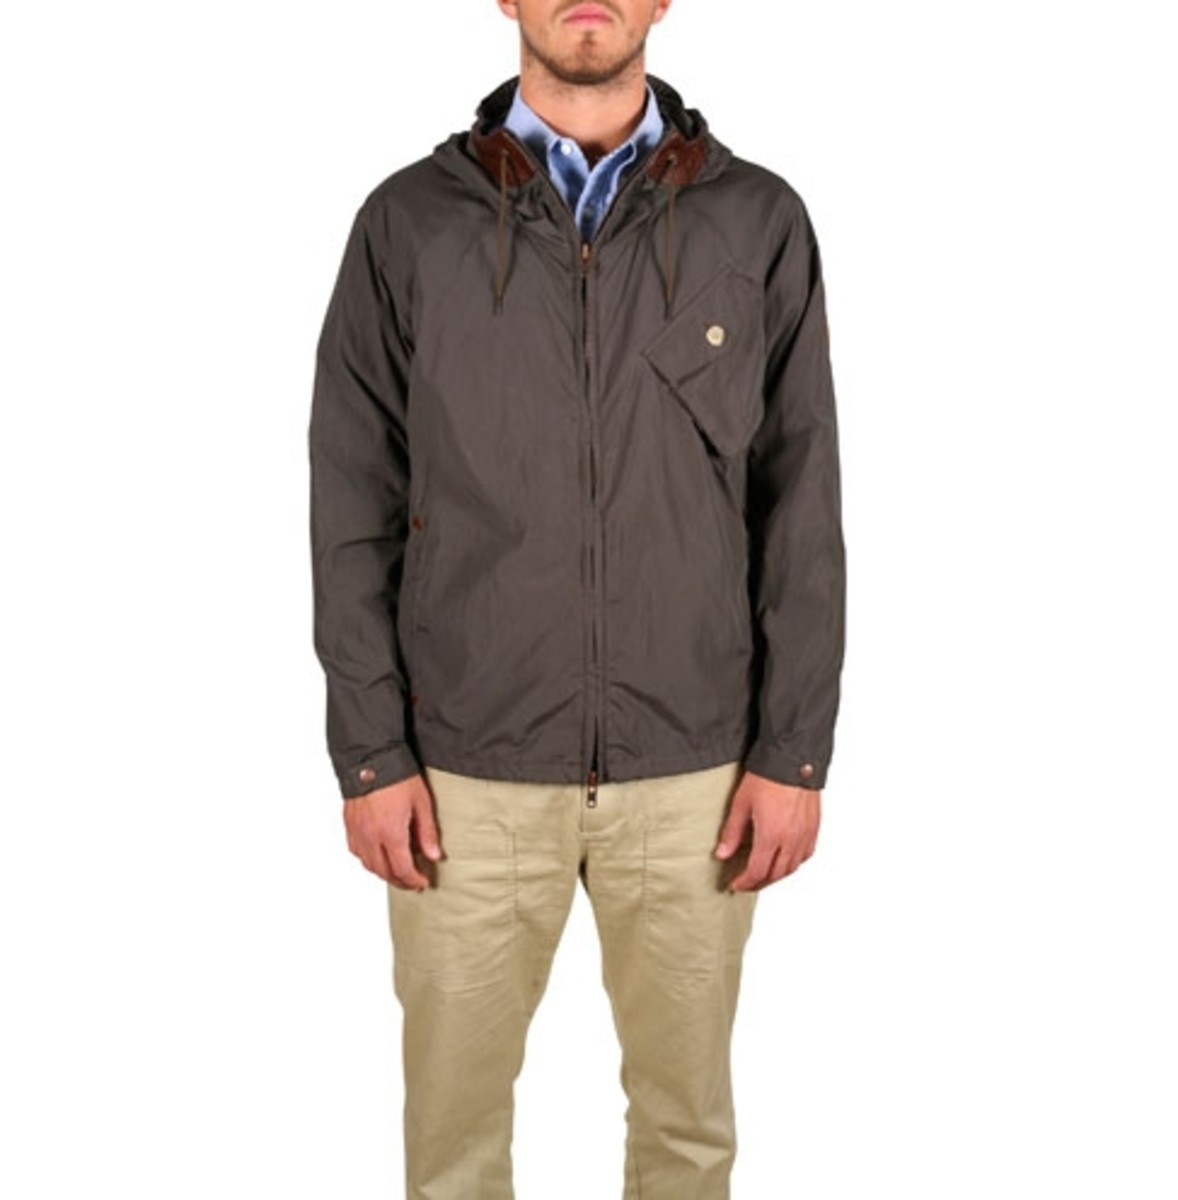 Penfield SS2011 Jackets 28